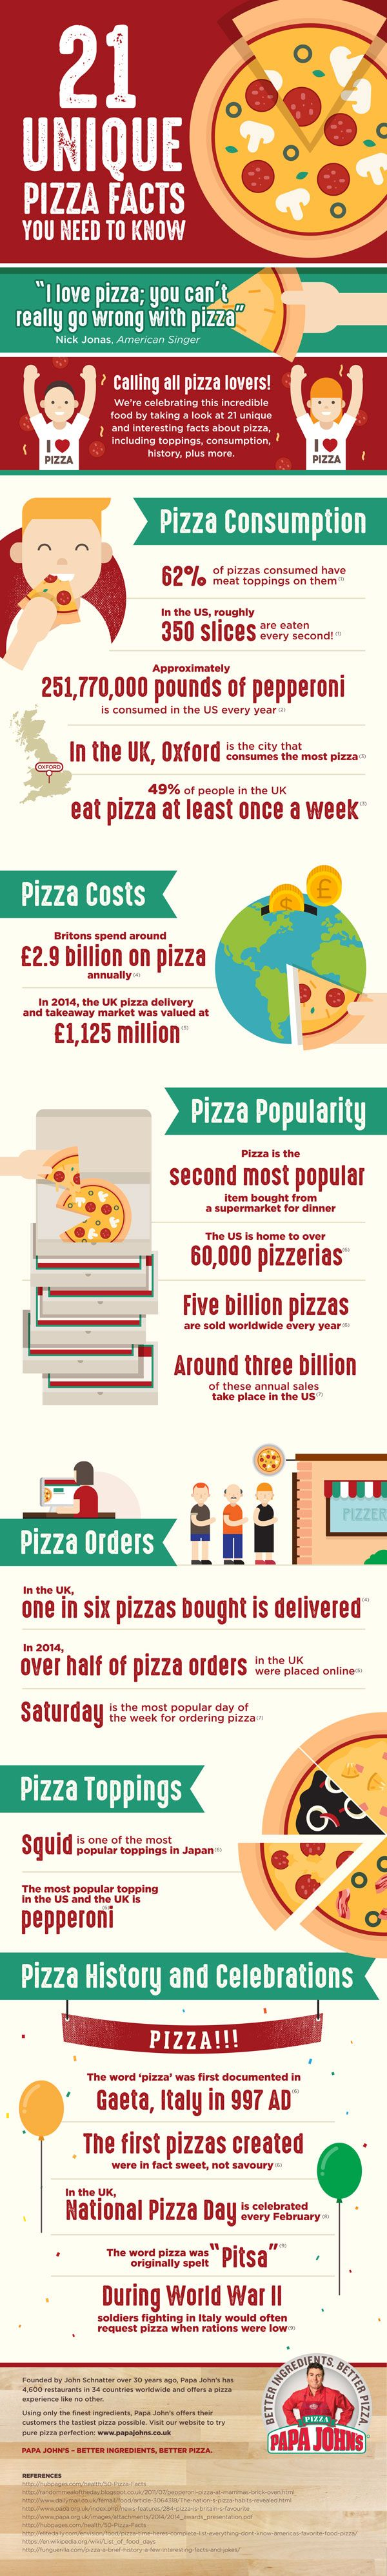 21 Unique Pizza Facts You Need To Know (Infographic) #pizza